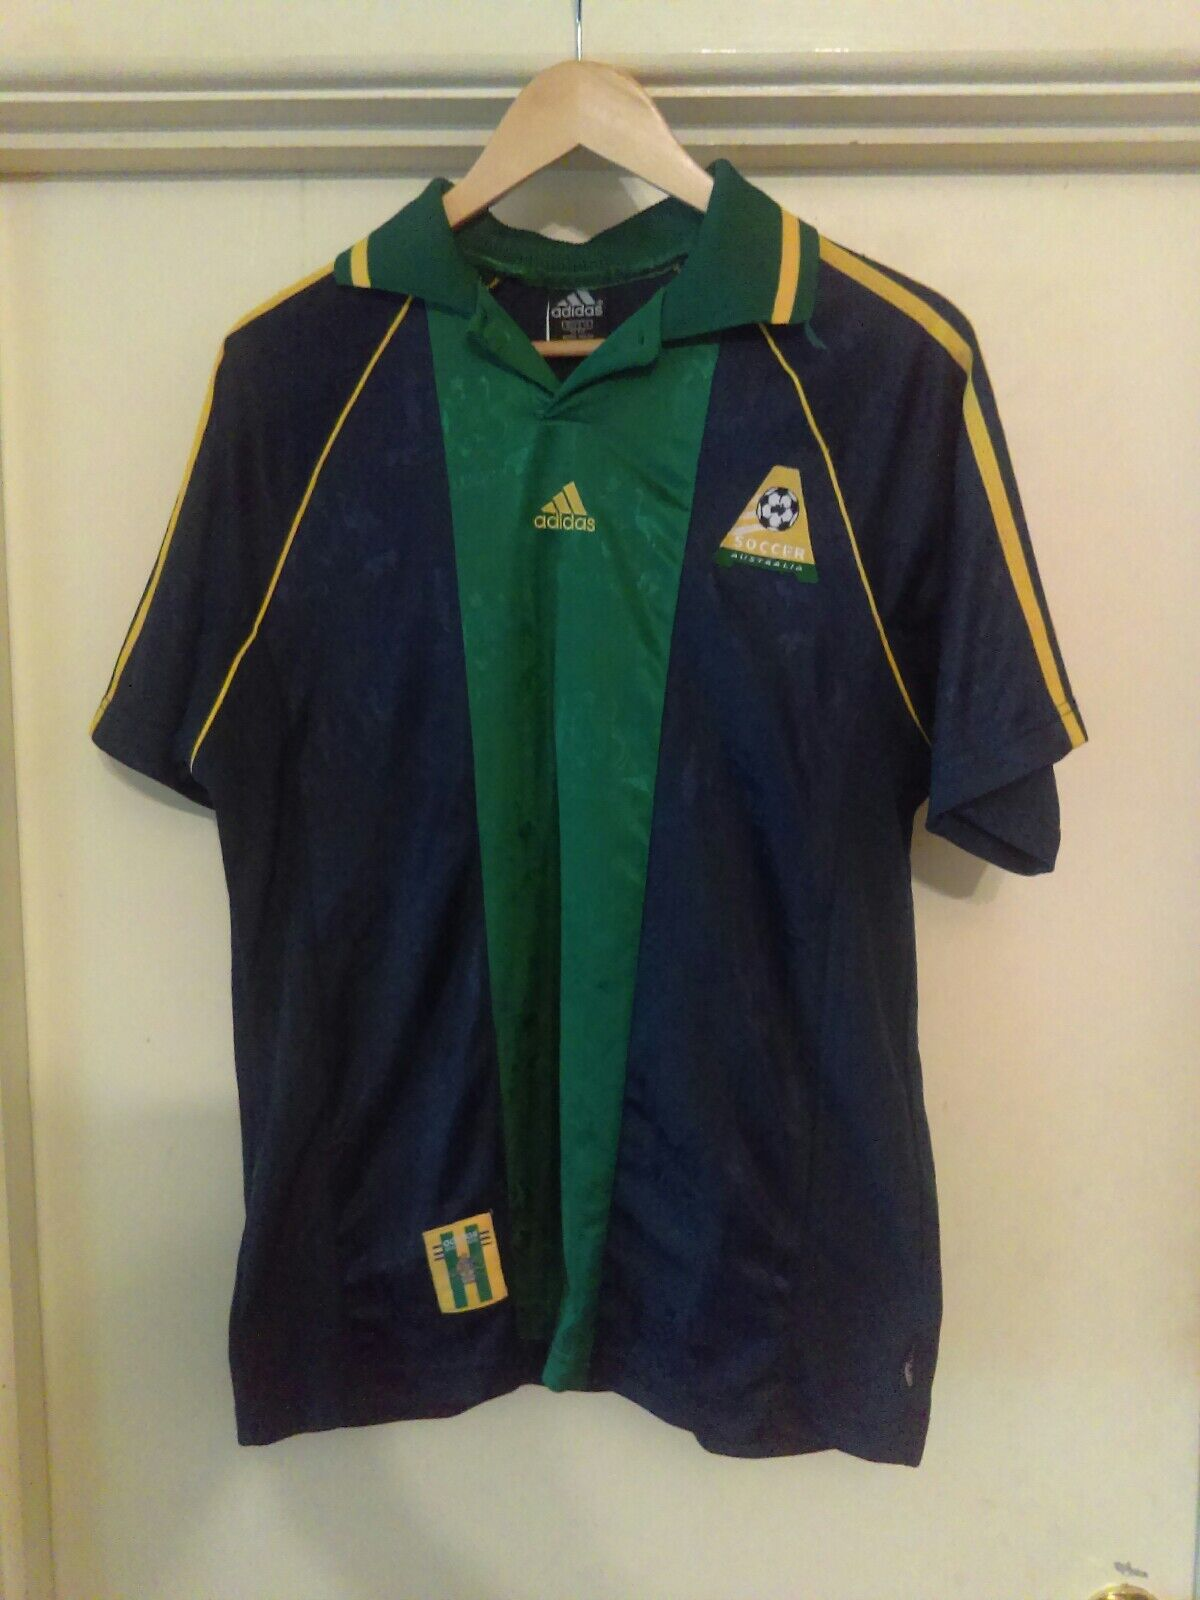 aa7f39917 90s boys size 14 socceroos jersey. Made in Australia adidas Vintage ...